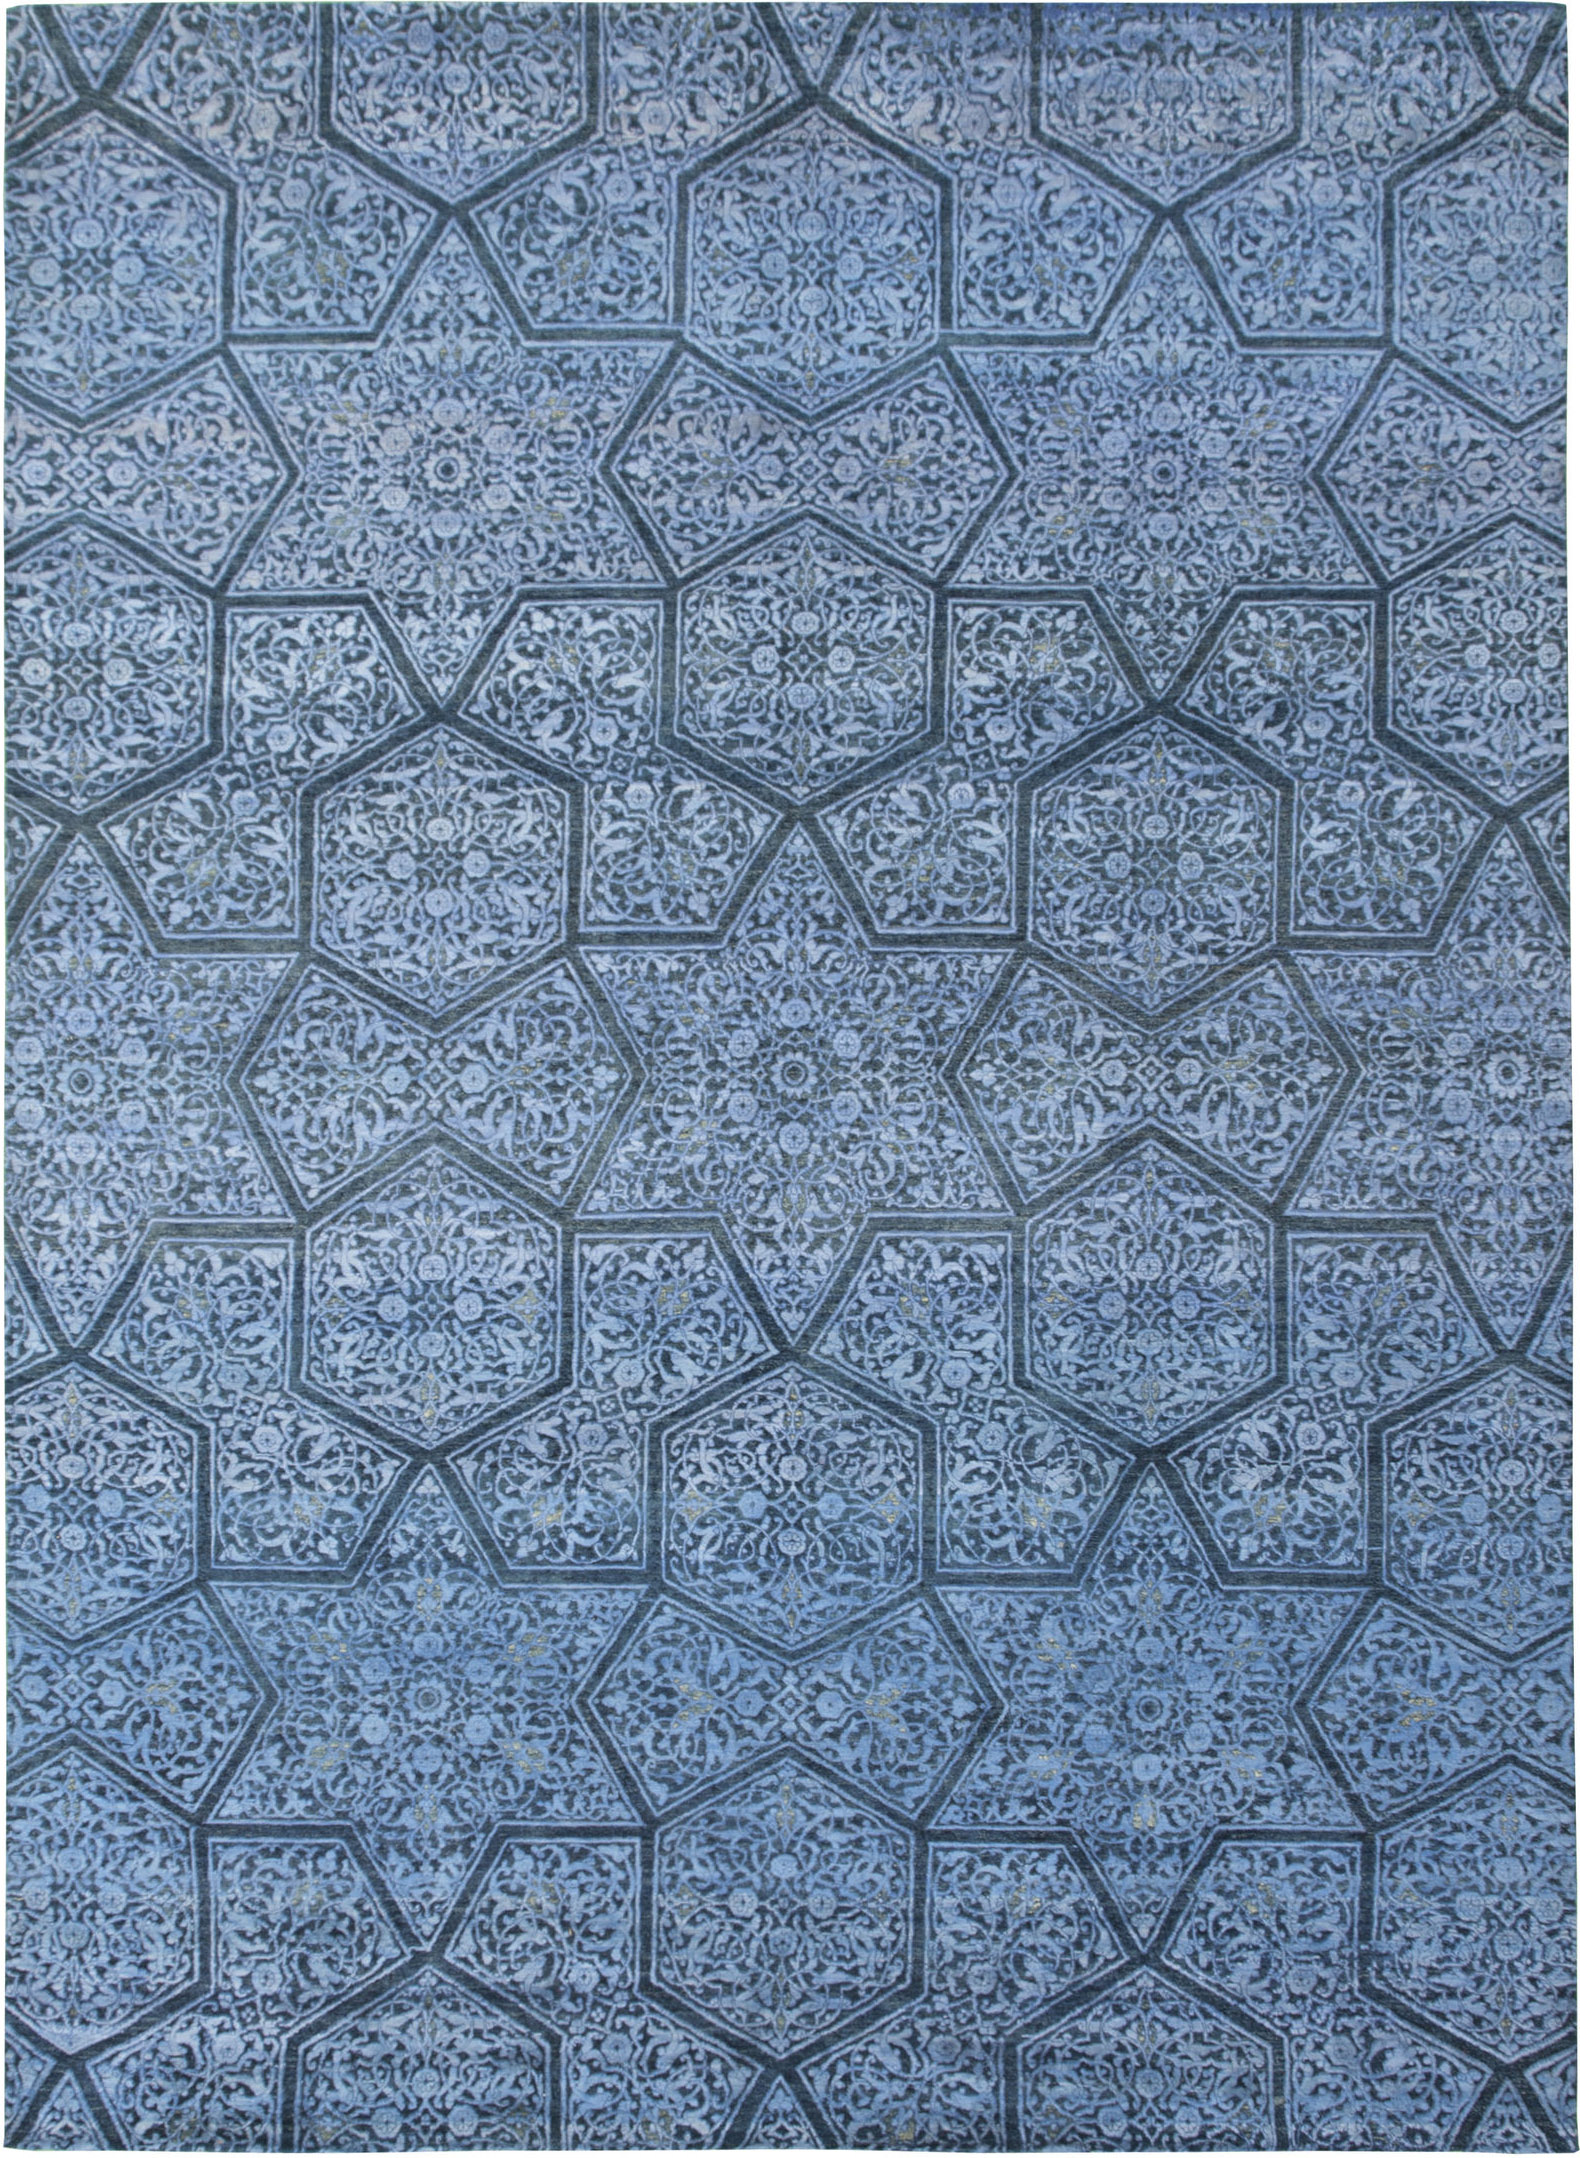 Un-Official Selection, Best Transitional Design: 'Ottoman Collection' by Art Resources - artresources.us | Image courtesy of Art Resources via Domotex.